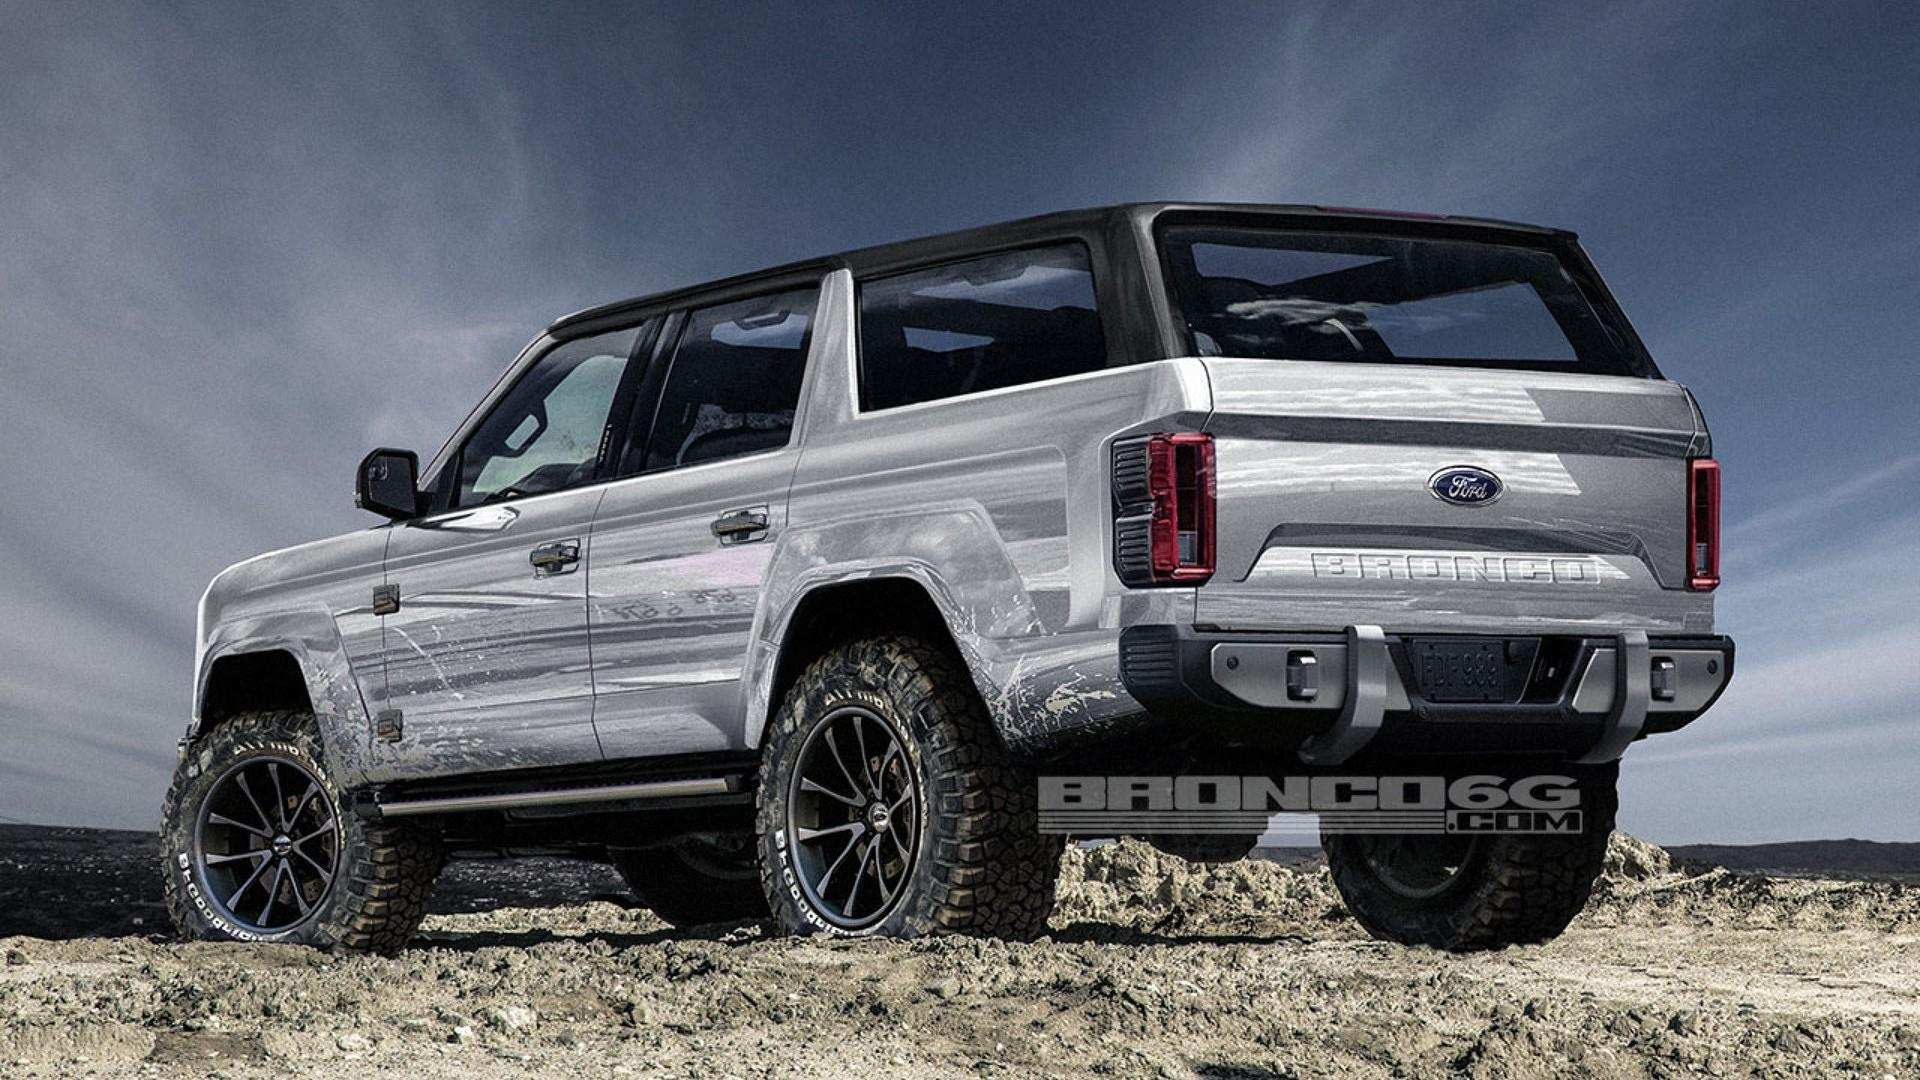 68 The Best Dwayne Johnson Ford Bronco 2020 Exterior And Interior